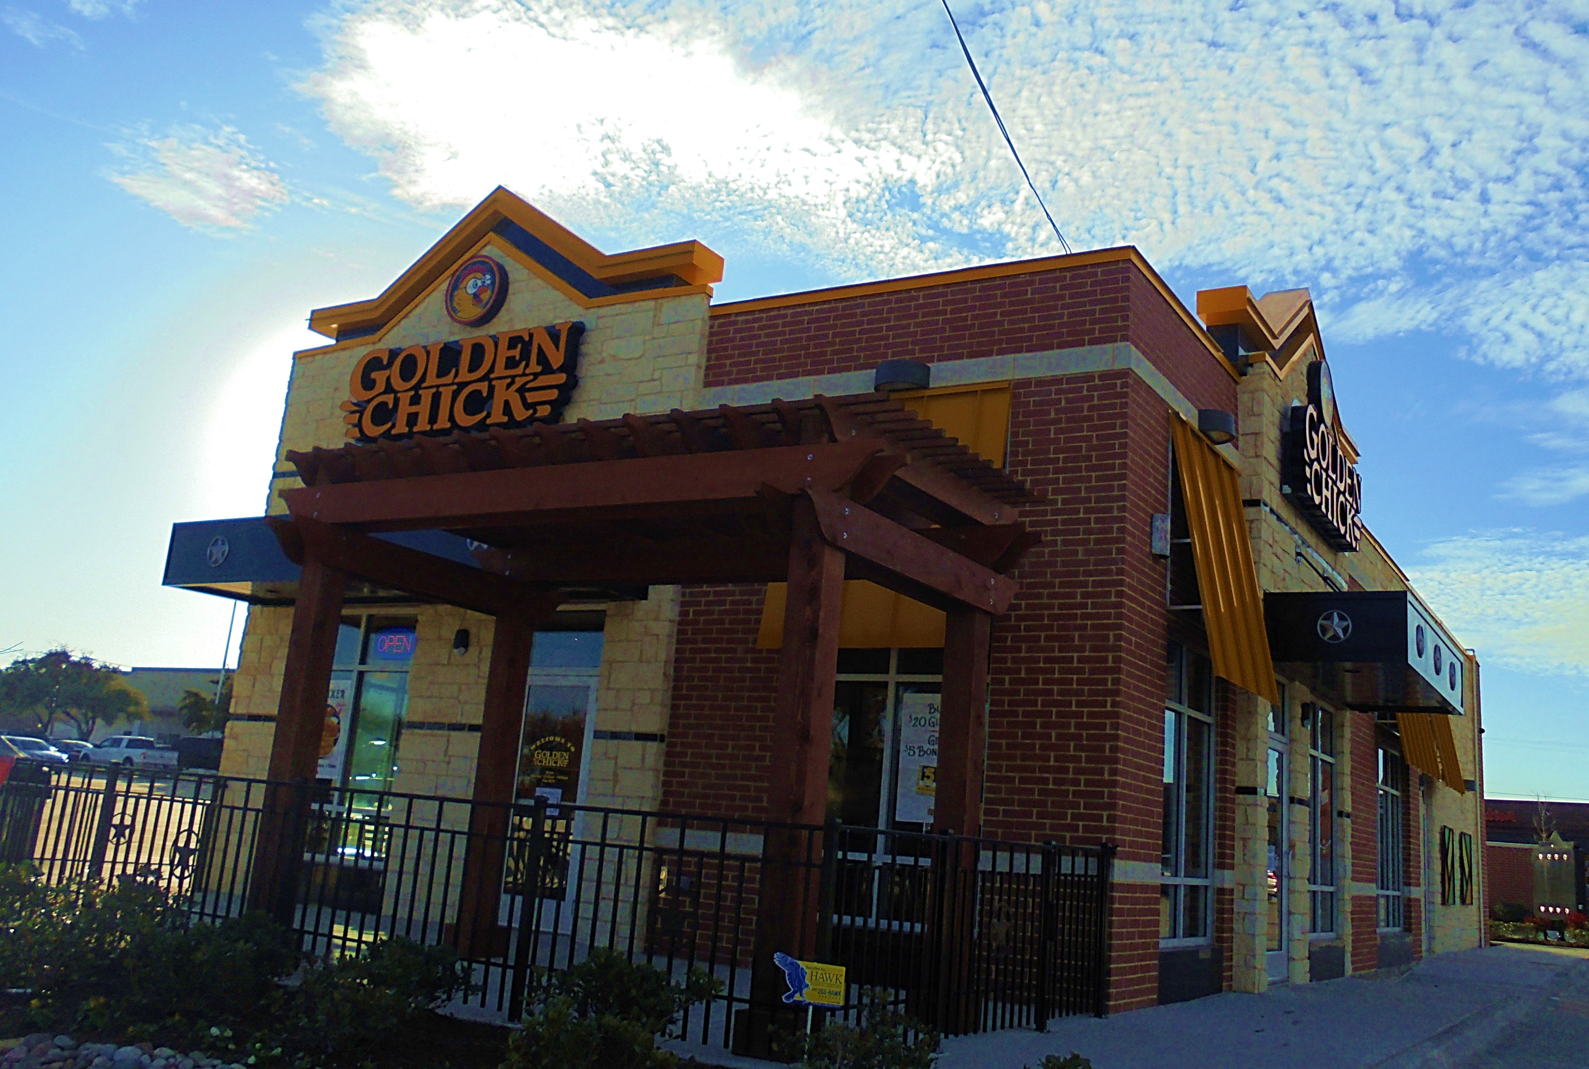 Golden Chick storefront.  Your local Golden Chick fast food restaurant in Carrollton, Texas